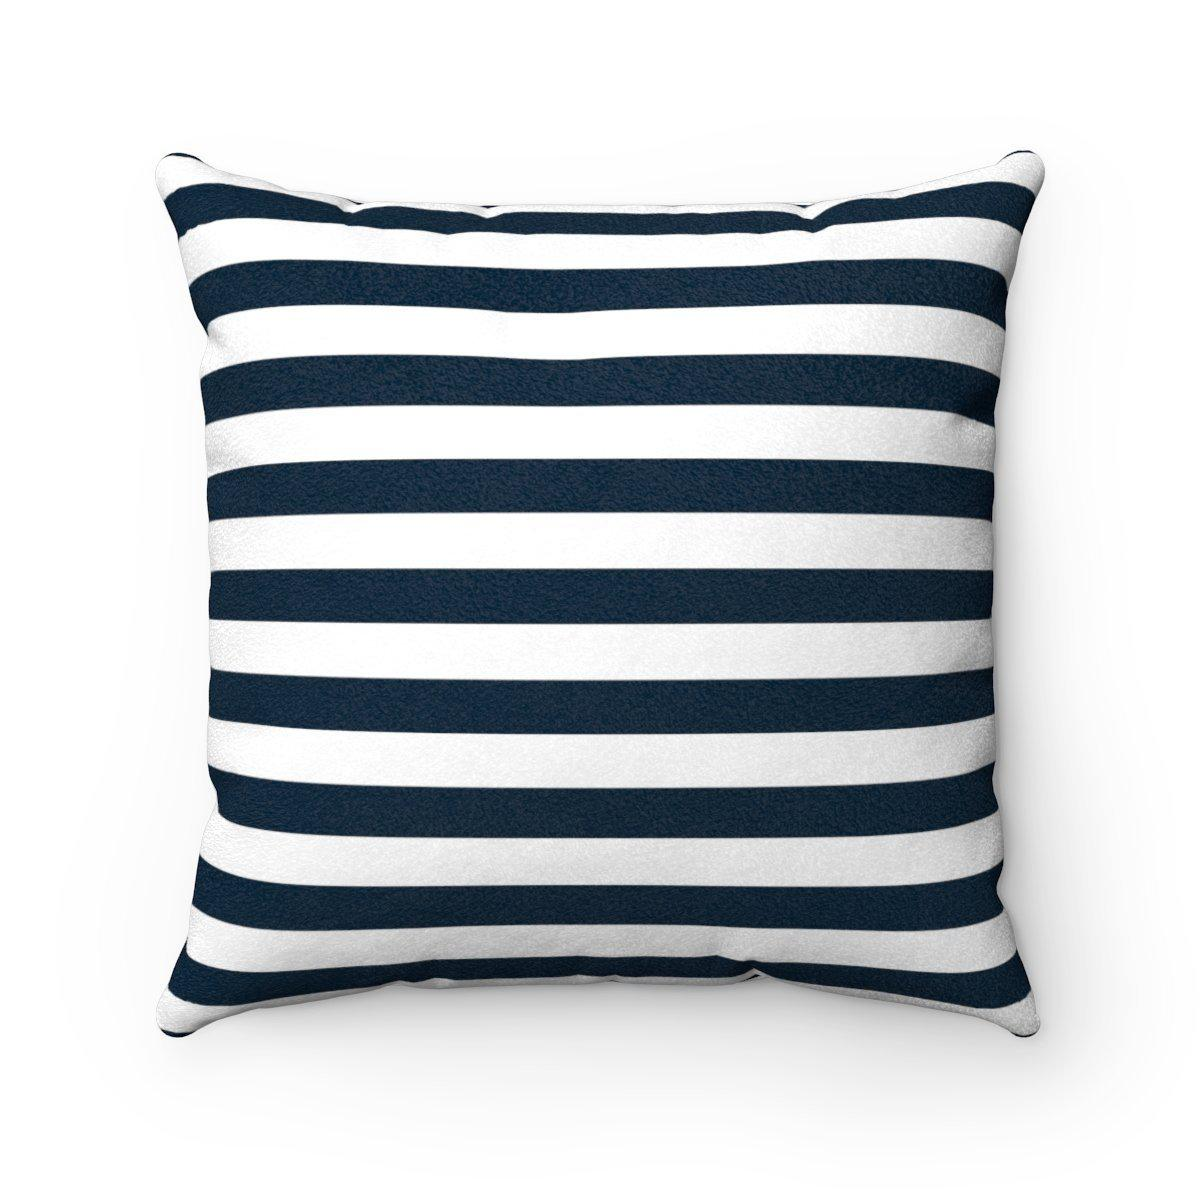 2 in 1 Double sided faux suede decorative striped pillow w/insert-Home Decor - Decorative Accents - Pillows & Throws - Decorative Pillows-Maison d'Elite-Très Elite